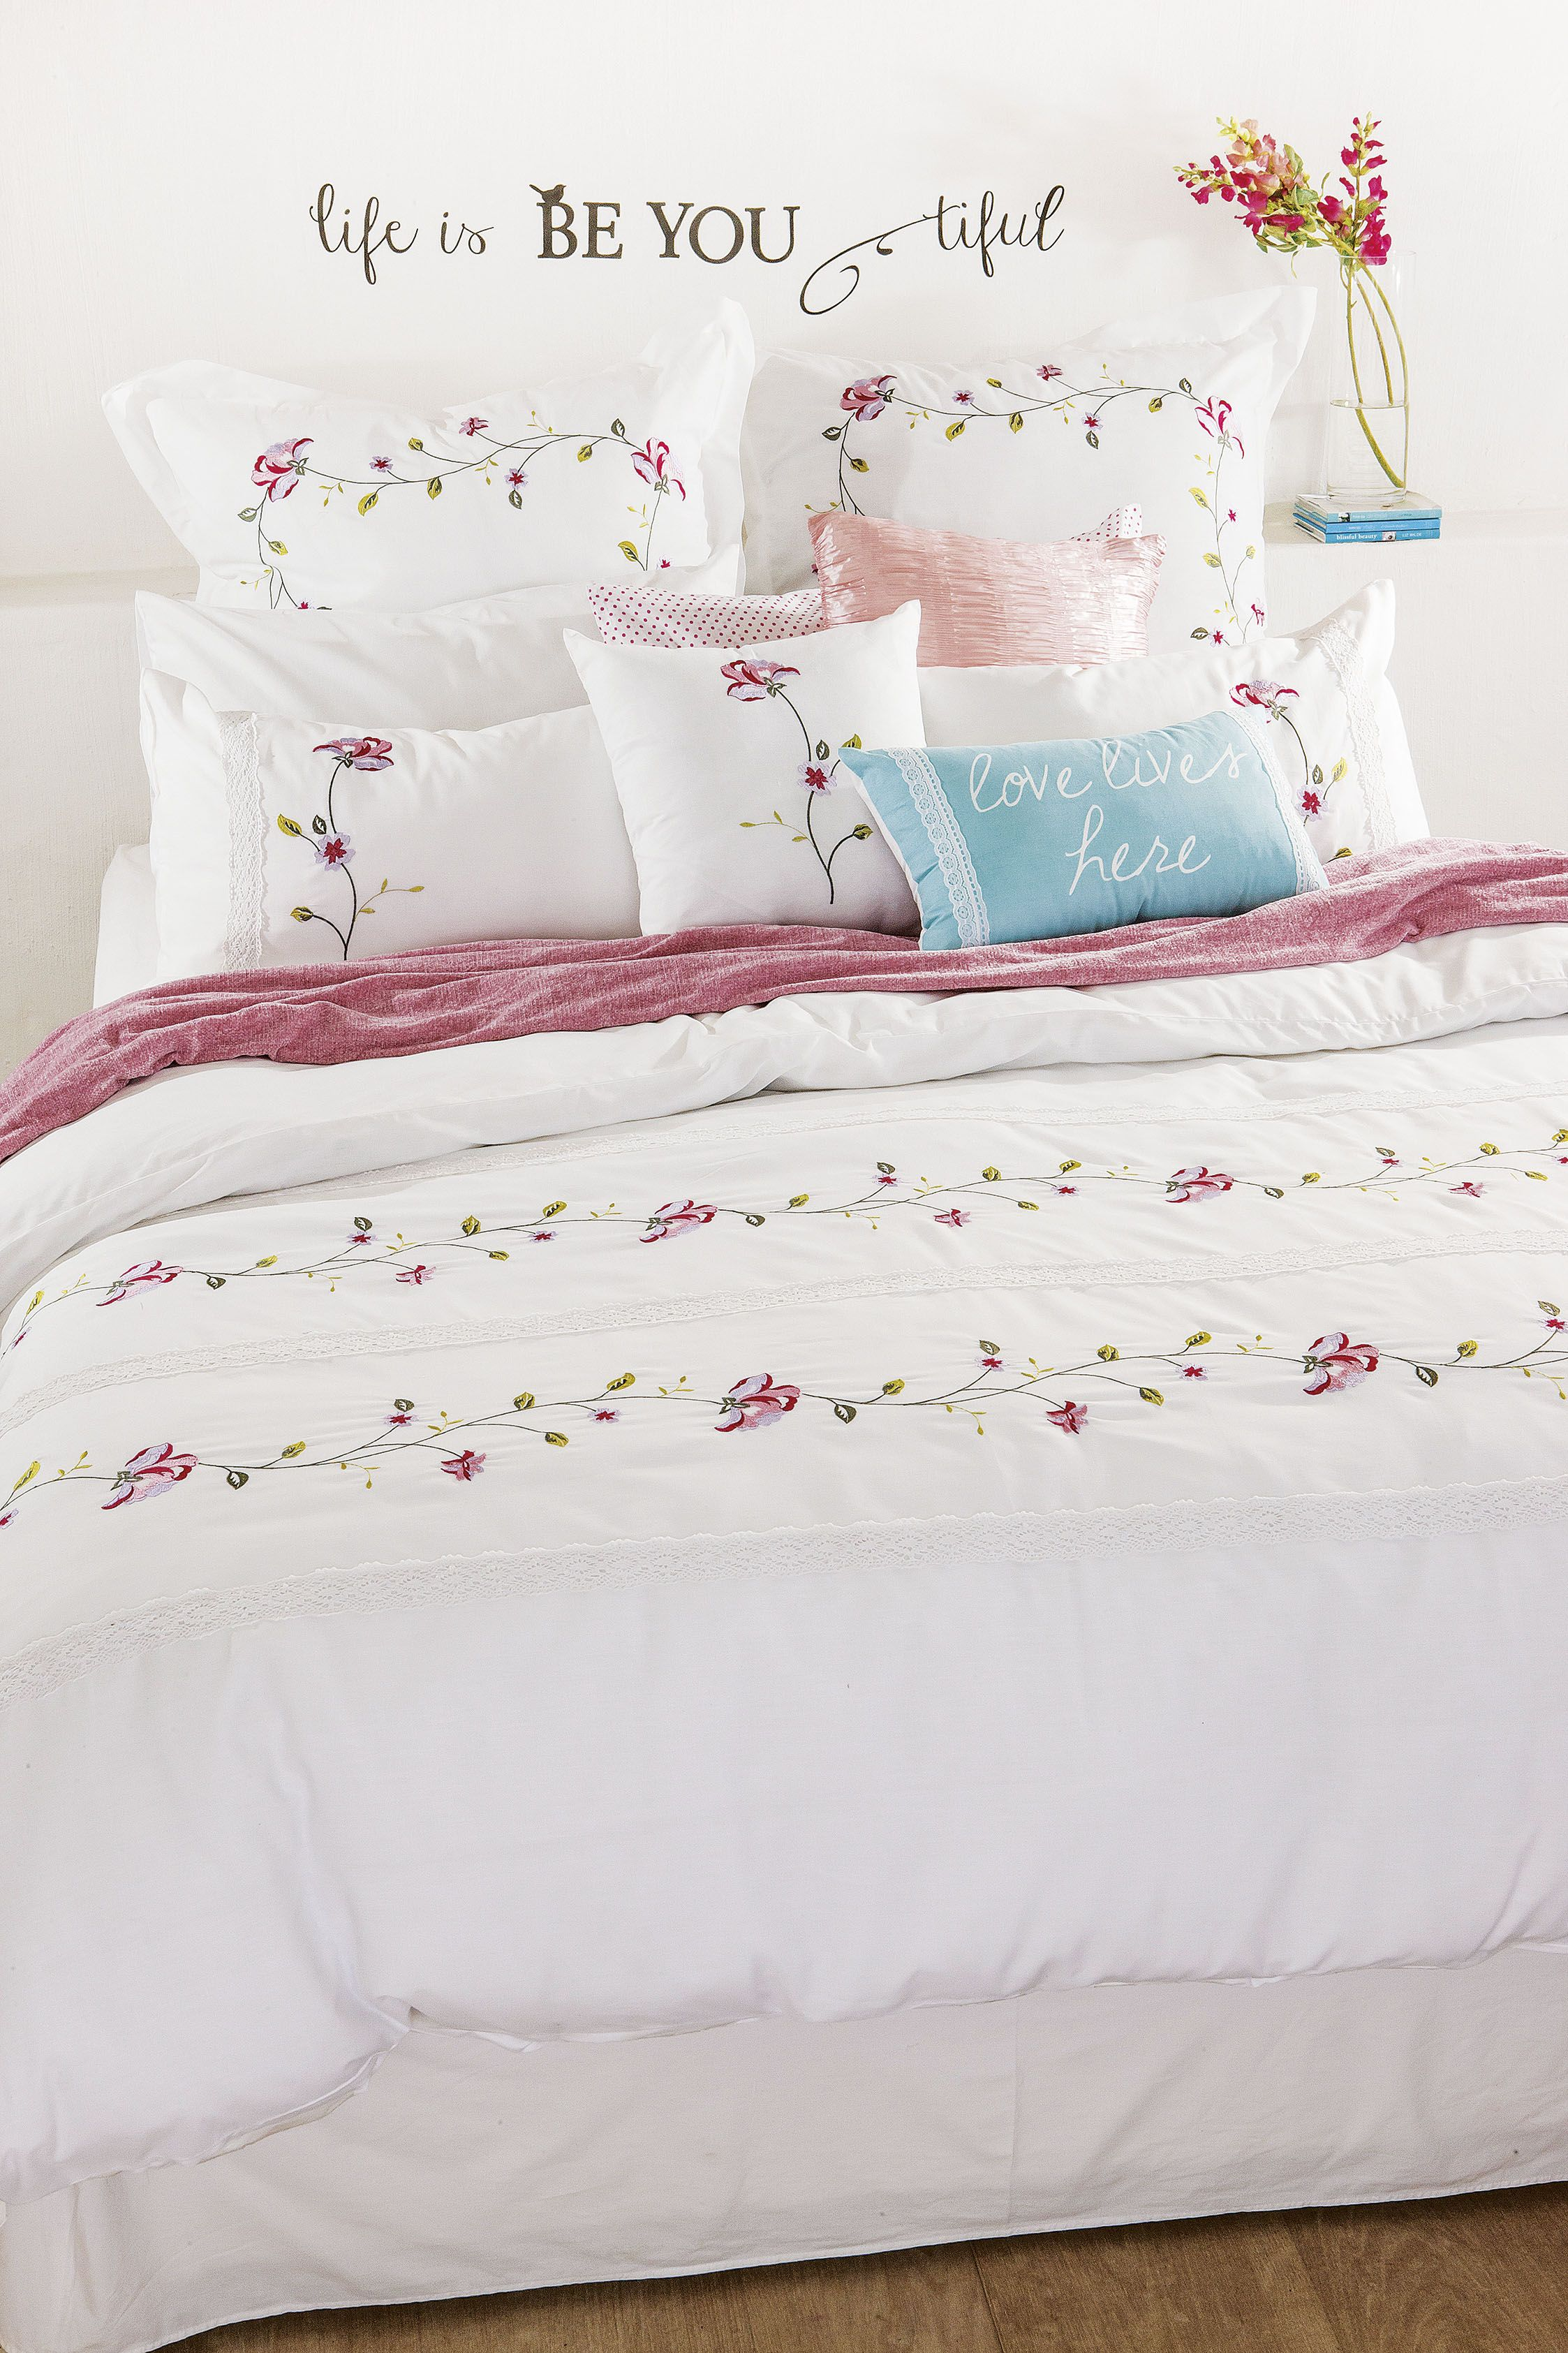 Mr Price Home Bedroom Floral Pink Pretty Mr Price Home